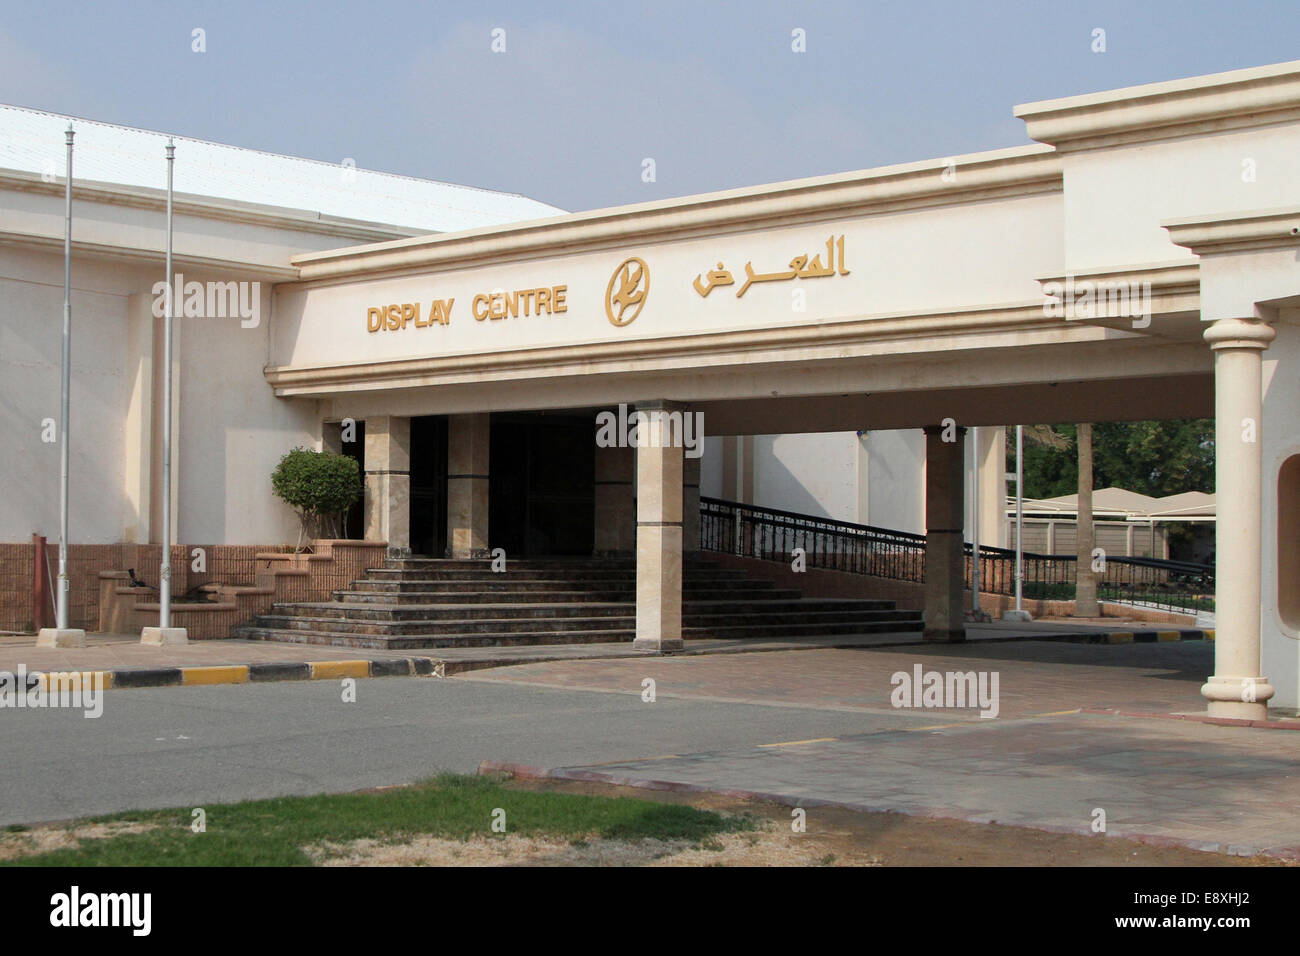 The Kuwait Oil Company Display Centre in Ahmadi, Kuwait Stock Photo